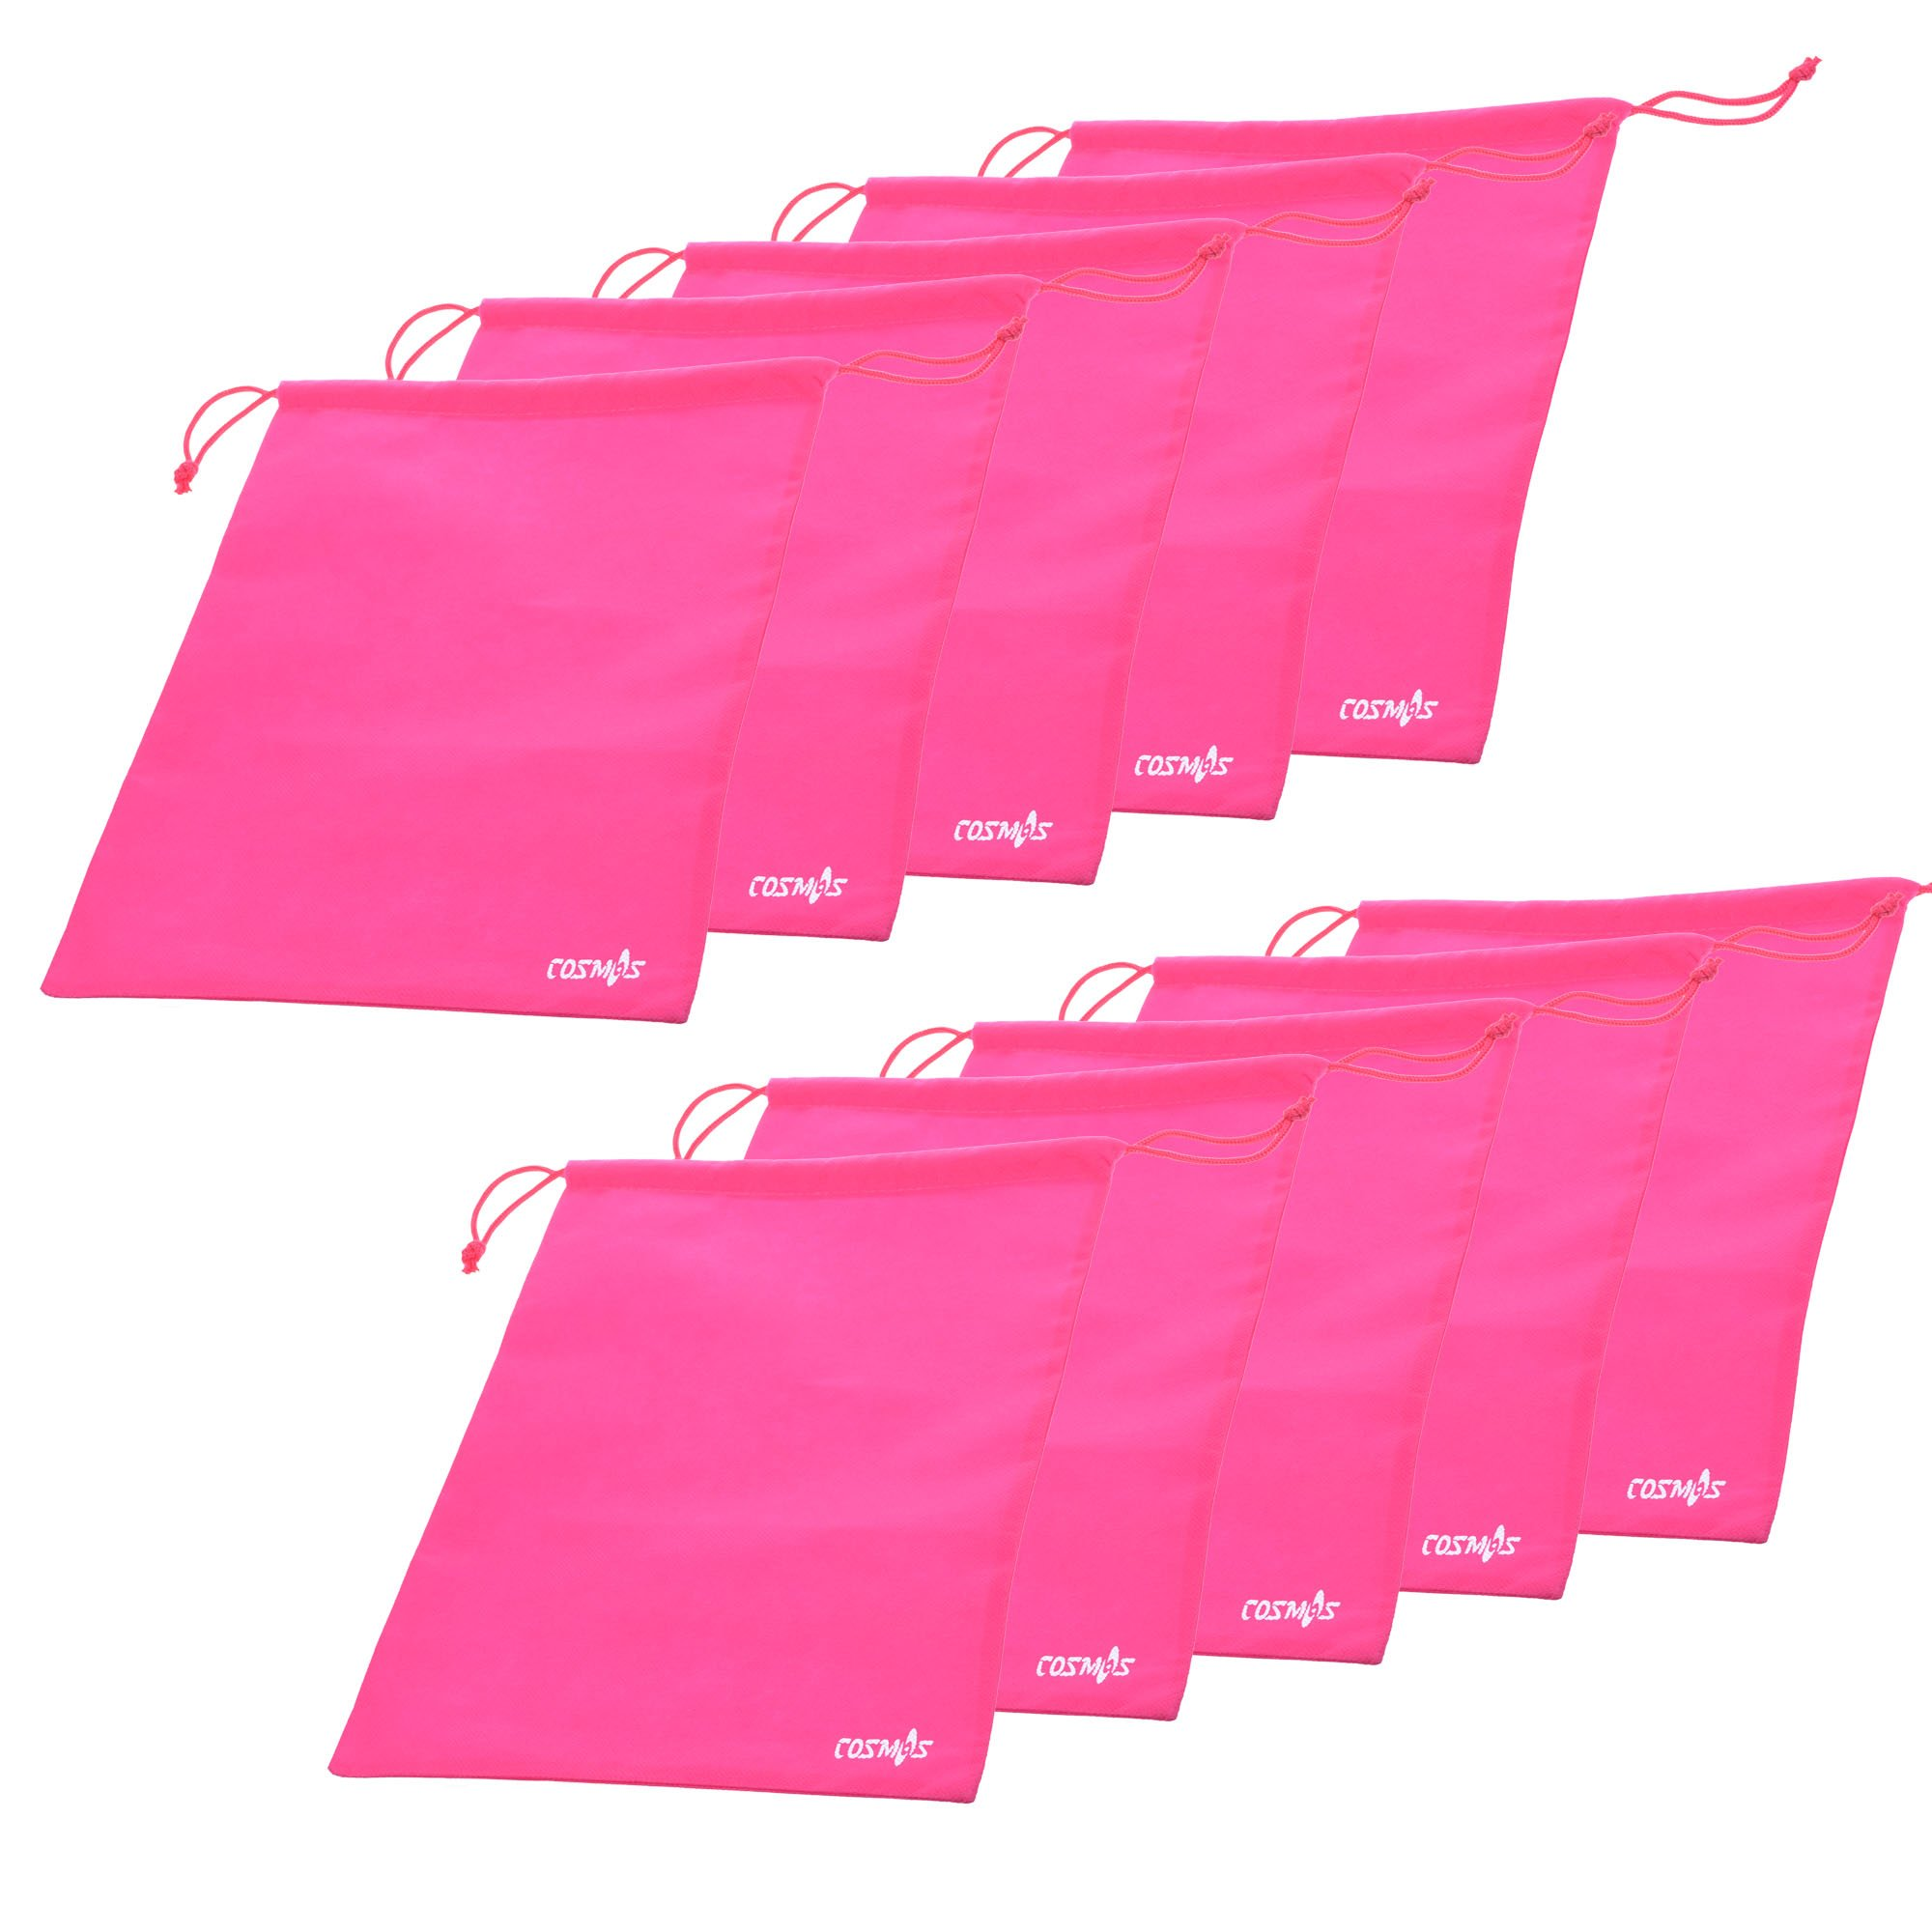 Cosmos ® 10 Pcs Women's Hot Pink Non-Woven Drawstring Shoe Bags for Travel Carrying, 13-3/4 x 11 Inches by Cosmos (Image #1)